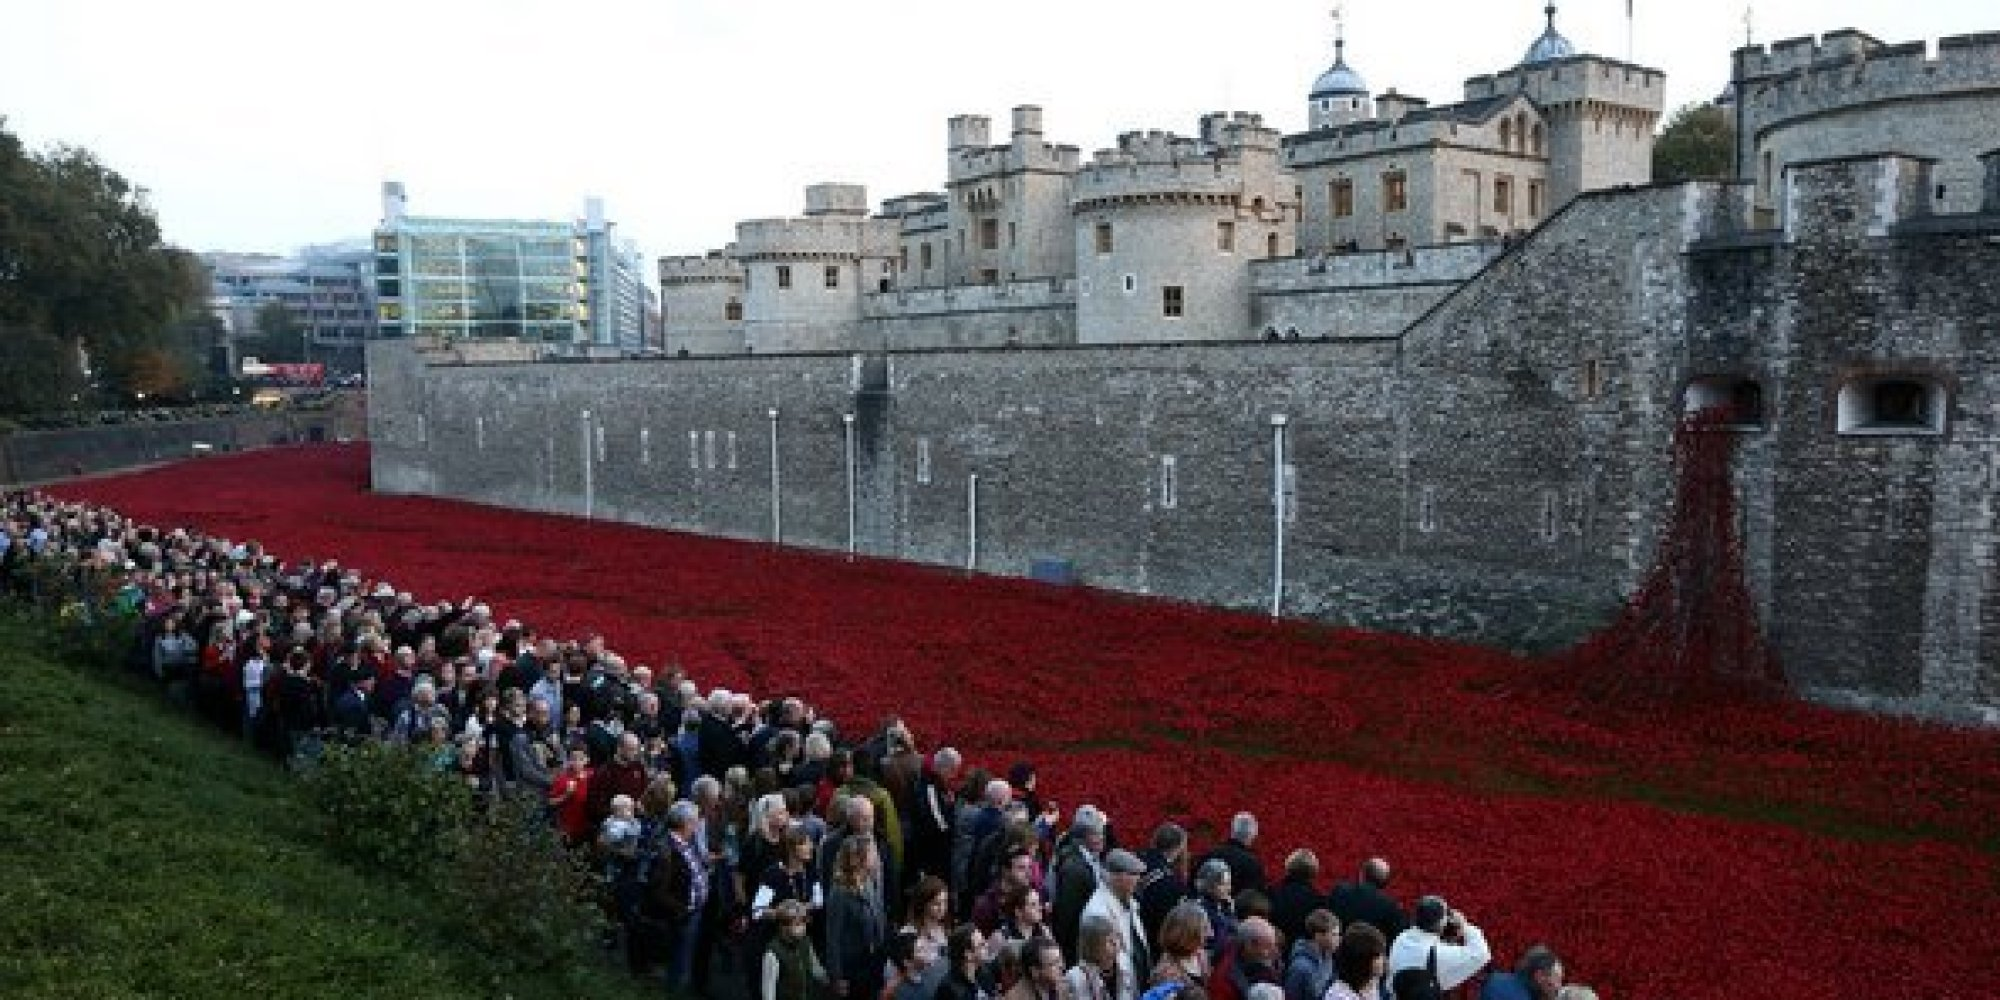 Images of Inside The Tower of London Tower of London Poppies Draw